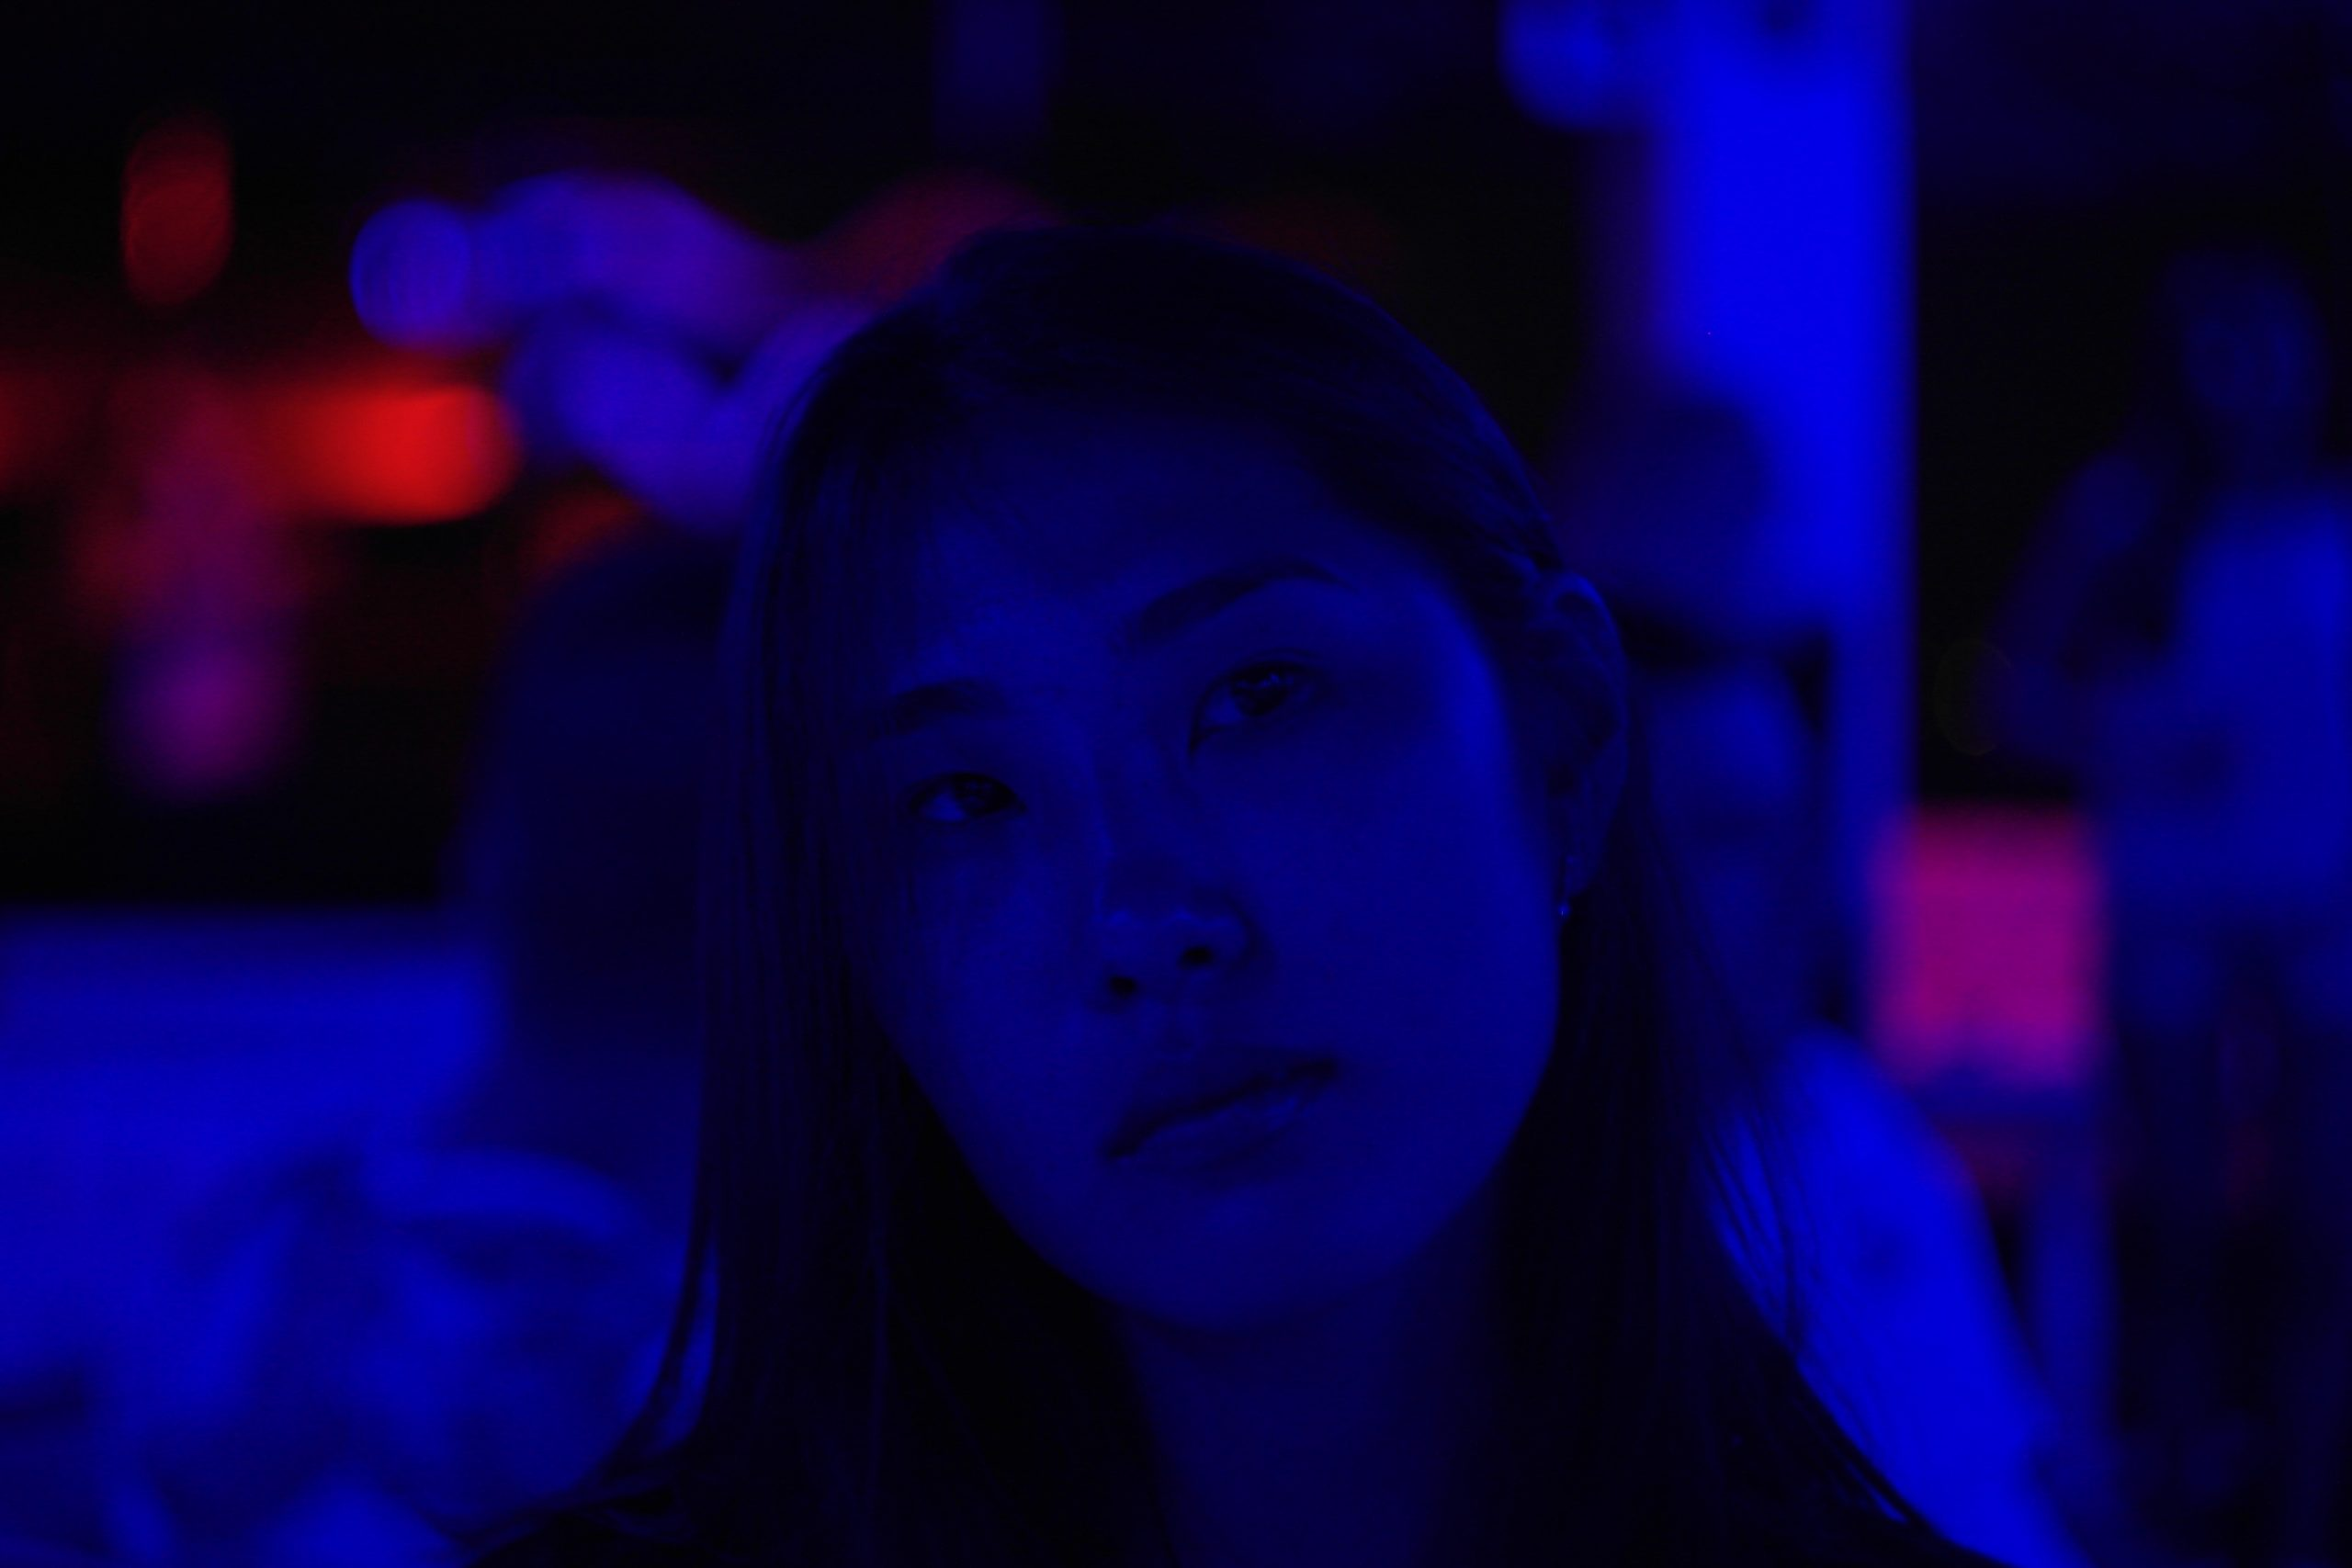 Describing stigma surrounding Asian-American women, many of these women can be left in the dark when it comes to body positivity in a tug-of-war between their two cultures much like the woman pictured above in a dark scene with little light.